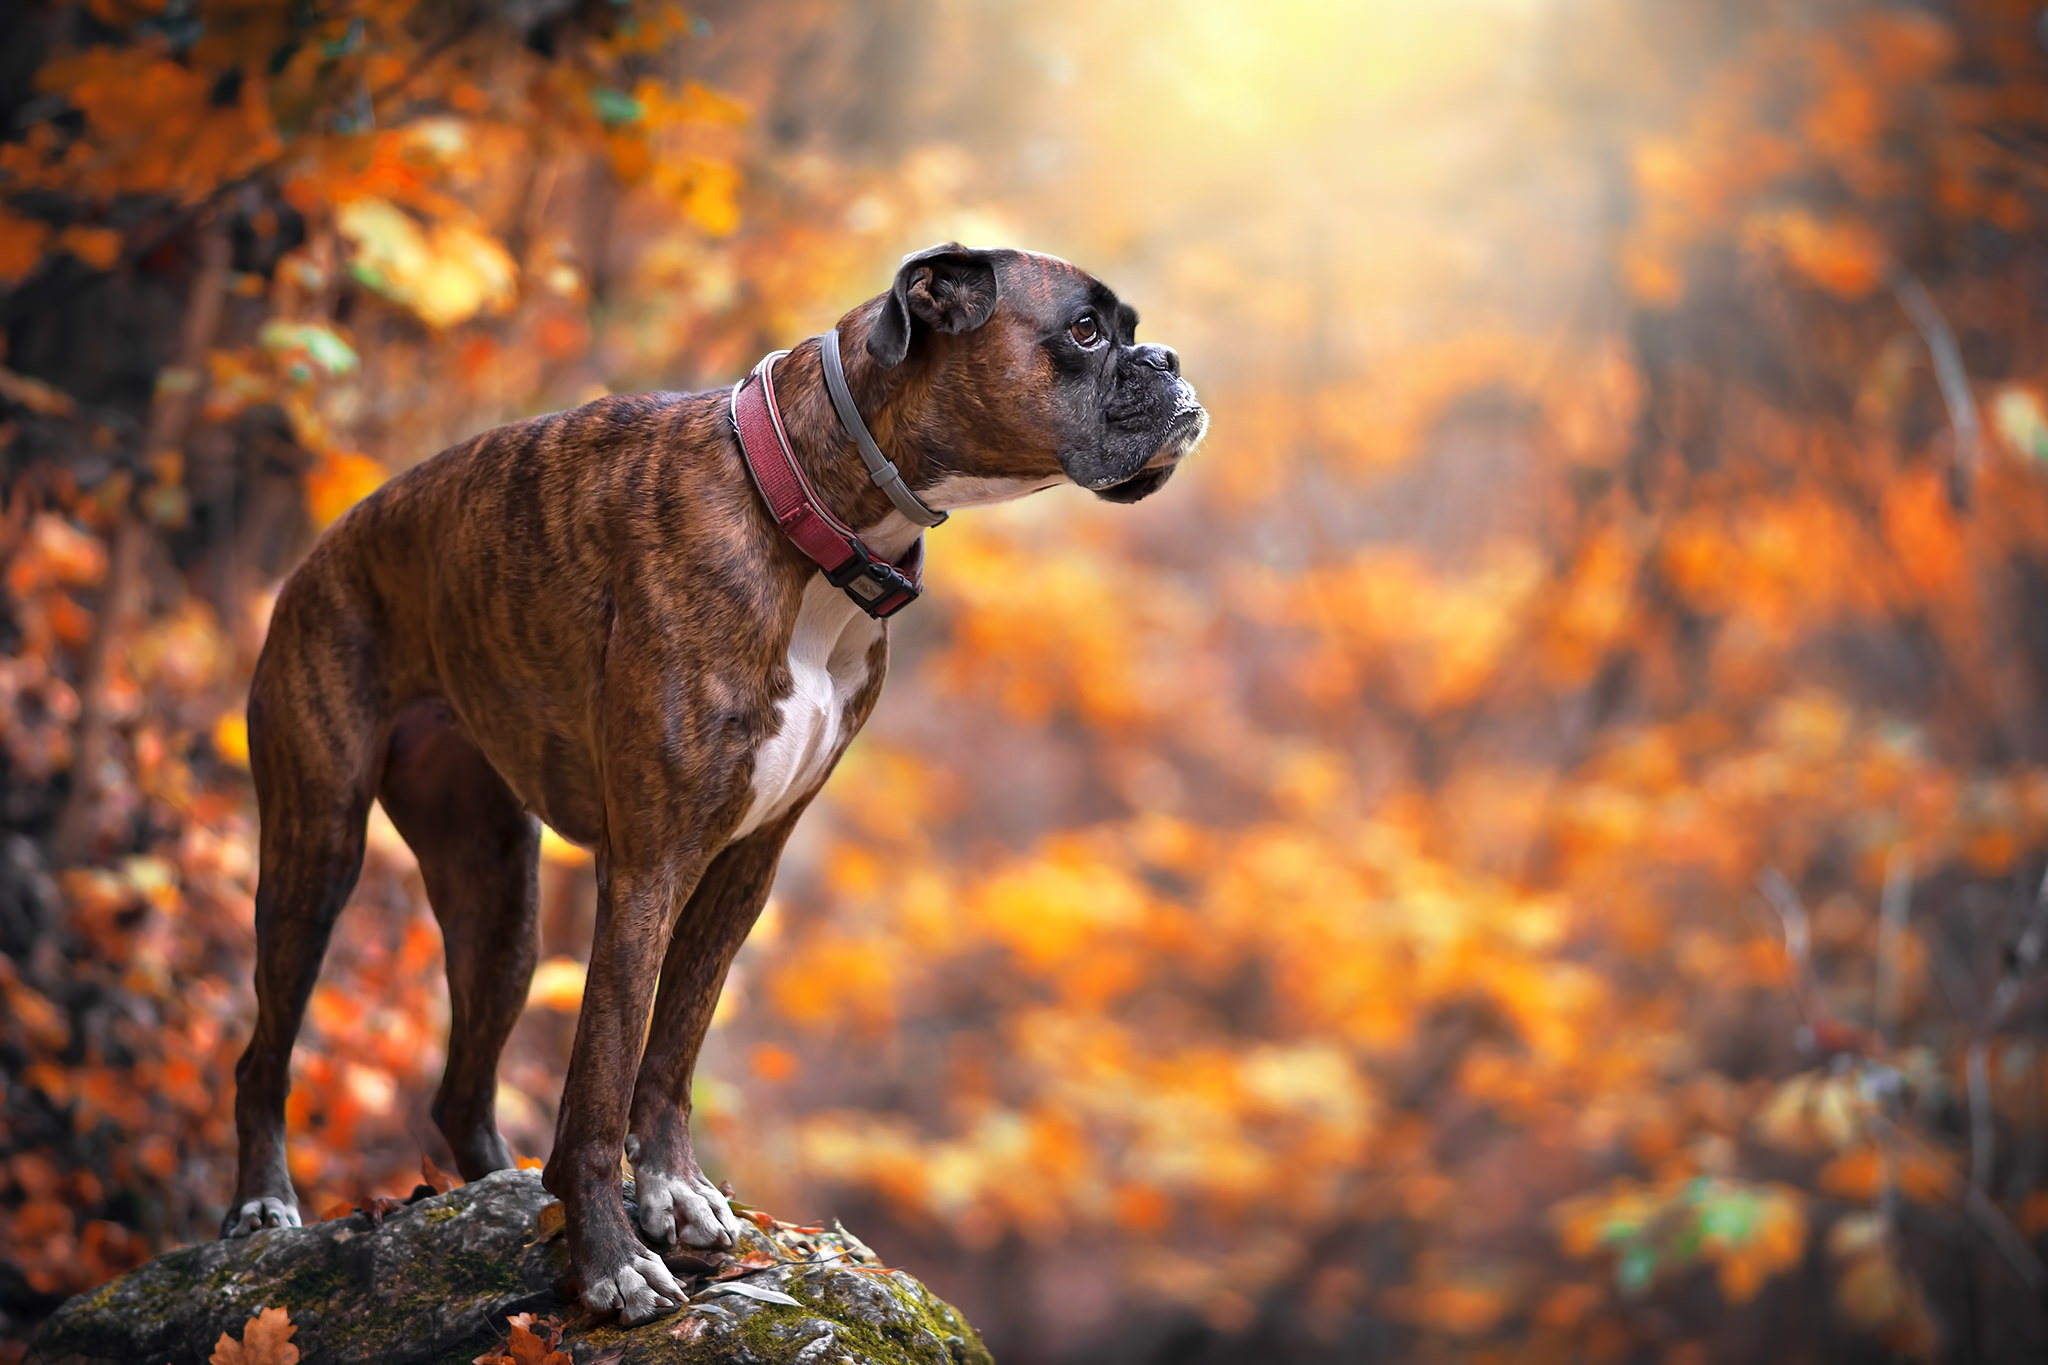 stunning boxer dog wallpaper hd 62526 2048x1365 px ~ hdwallsource